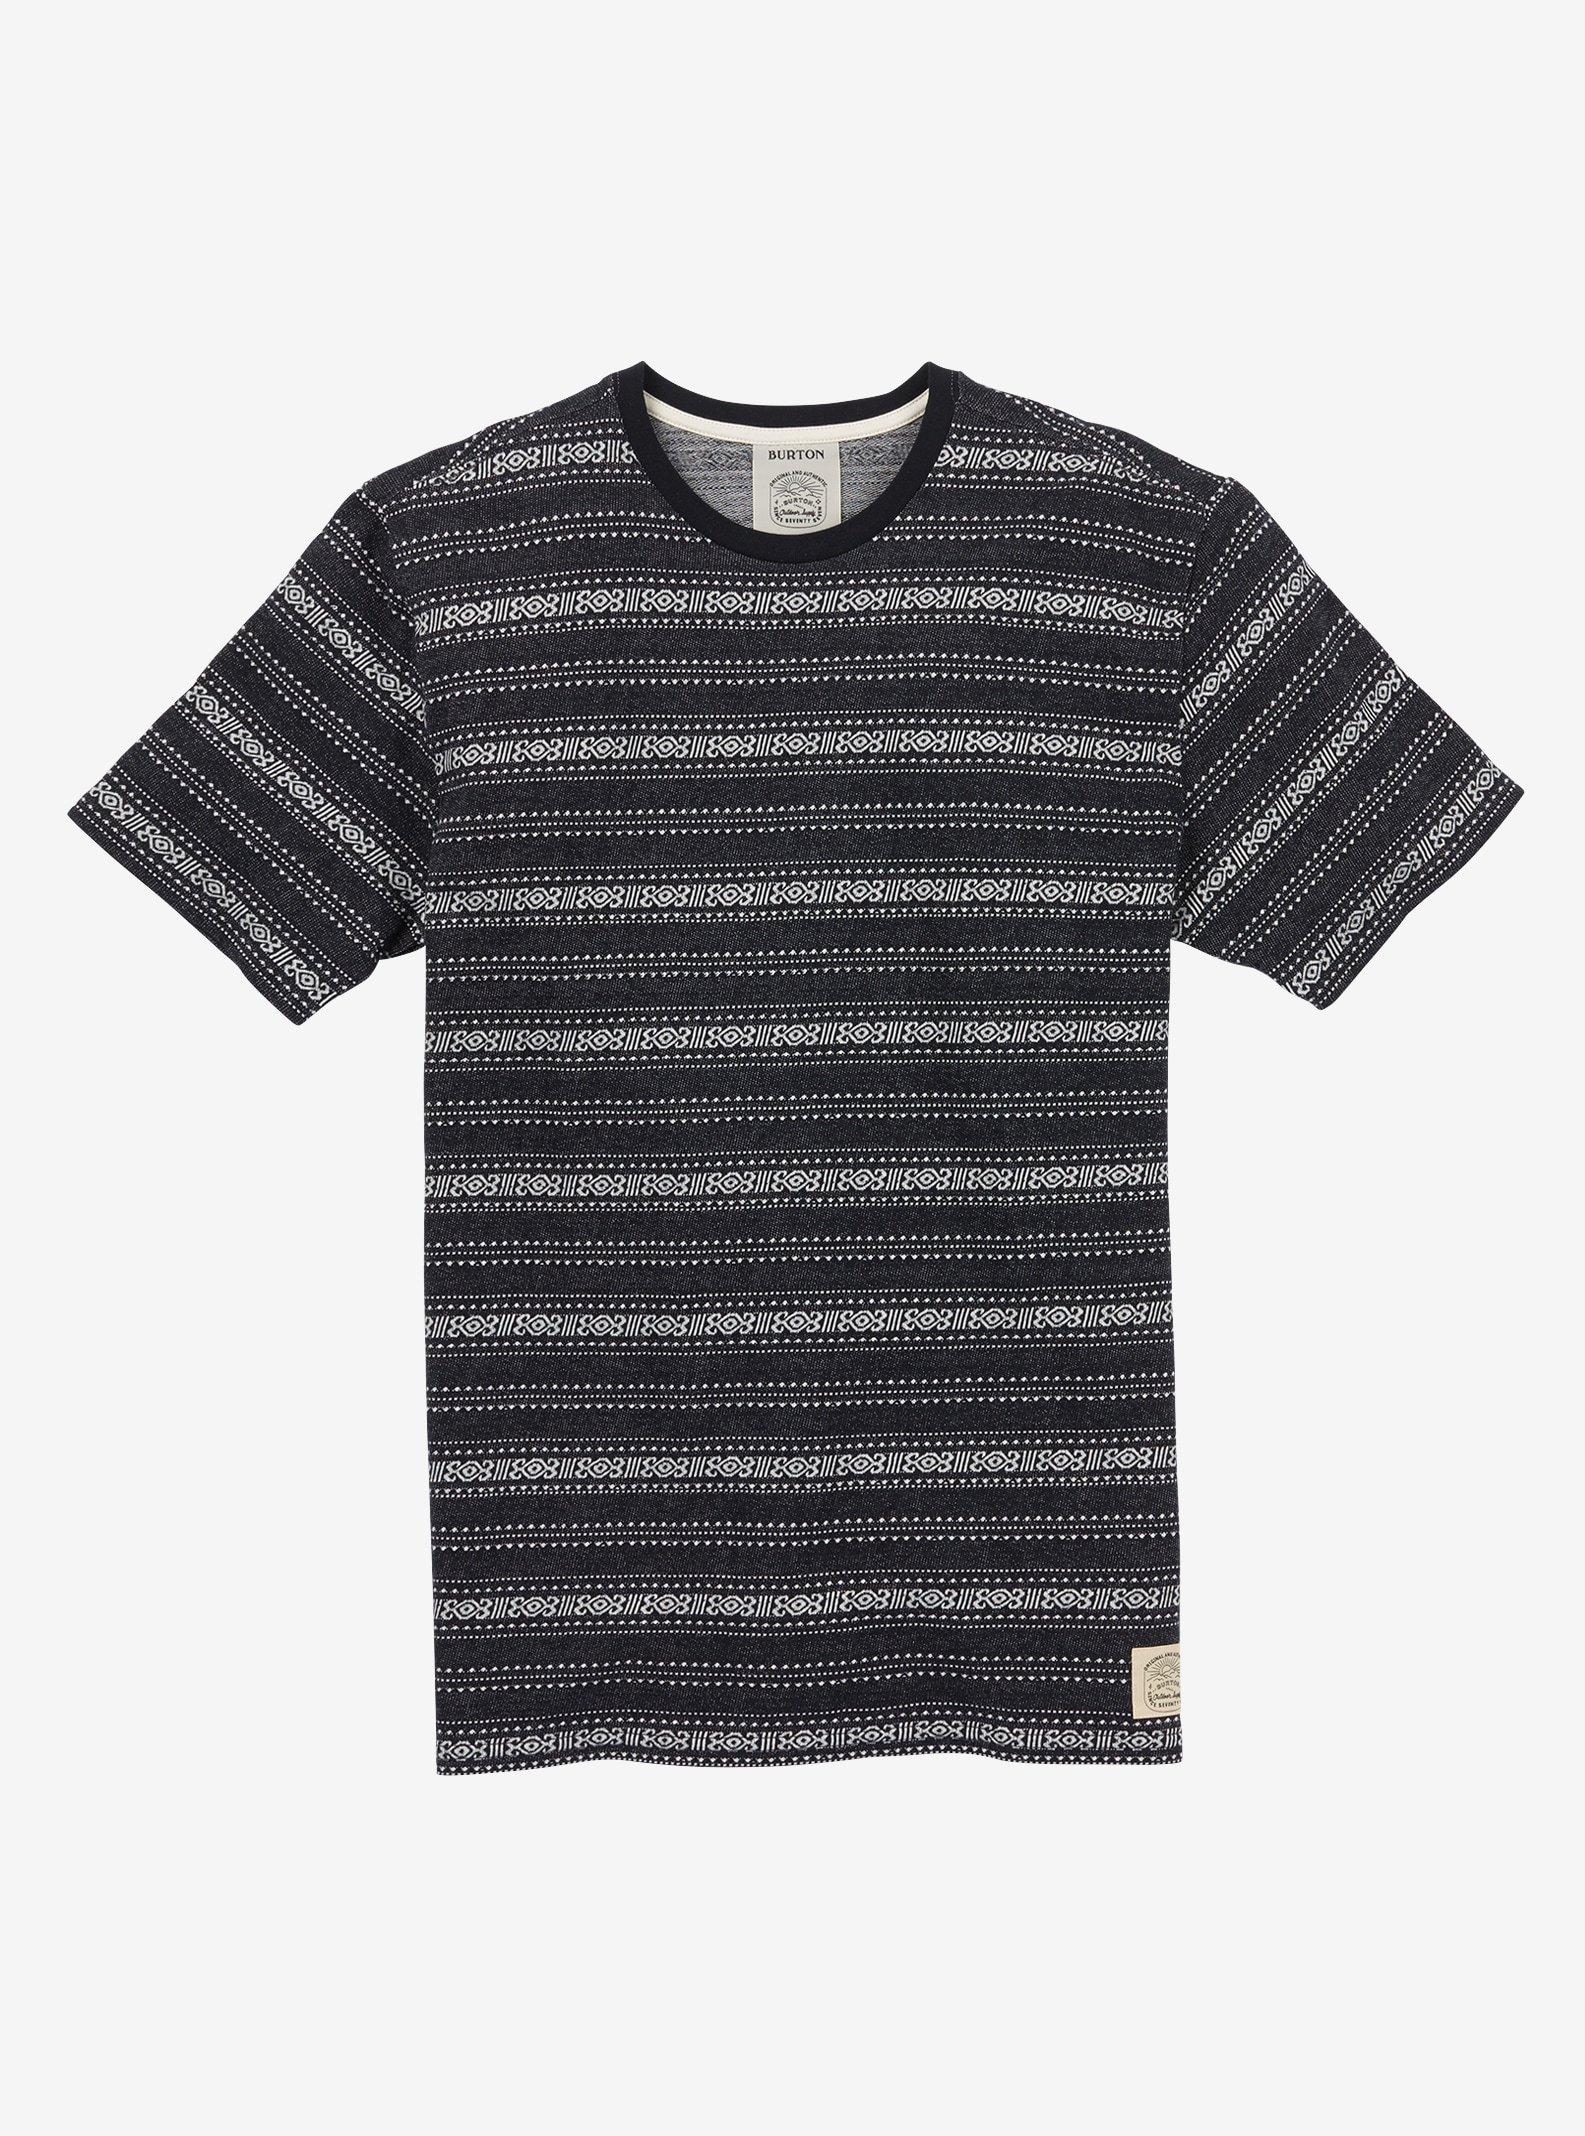 Men's Burton Foster Short Sleeve T Shirt shown in True Black